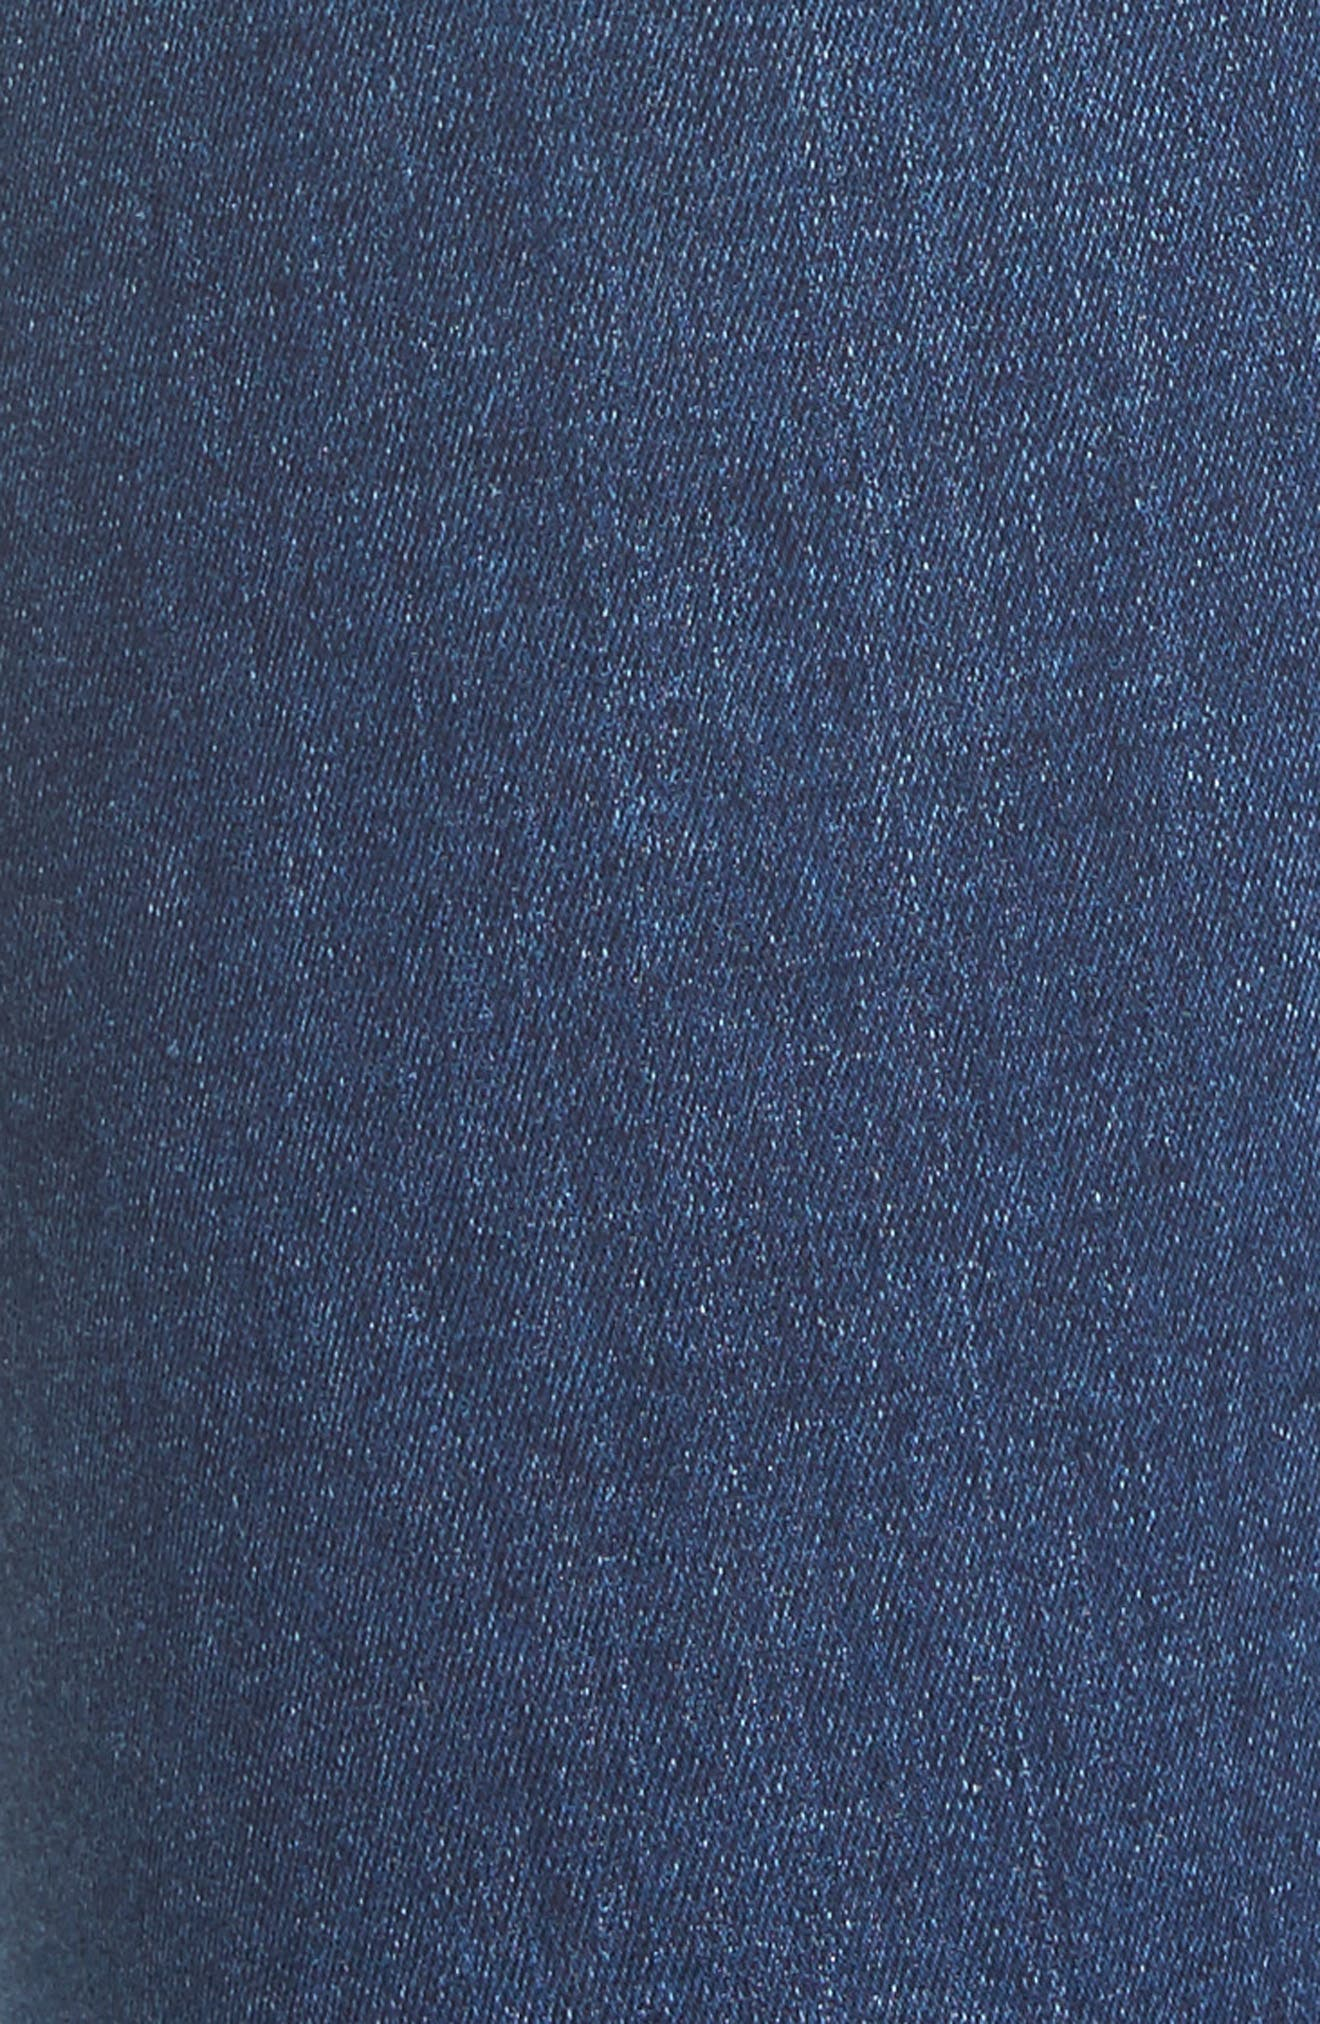 7 FOR ALL MANKIND<SUP>®</SUP>, b(air) Raw Hem Ankle Skinny Jeans, Alternate thumbnail 5, color, BAIR REIGN